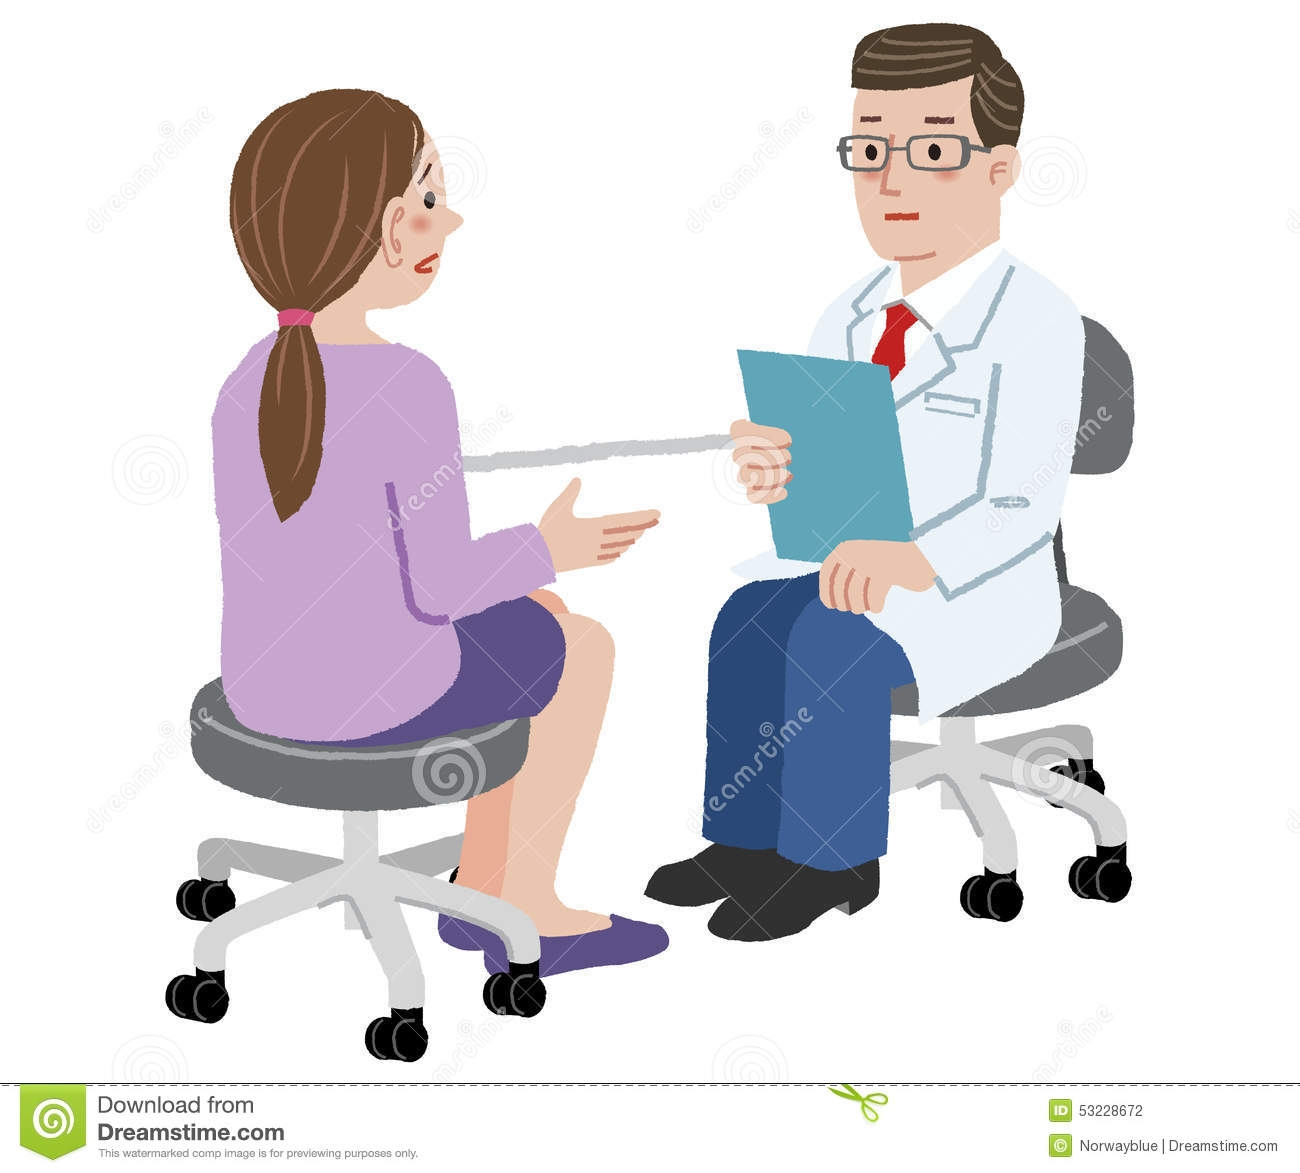 Consulting a doctor clipart.